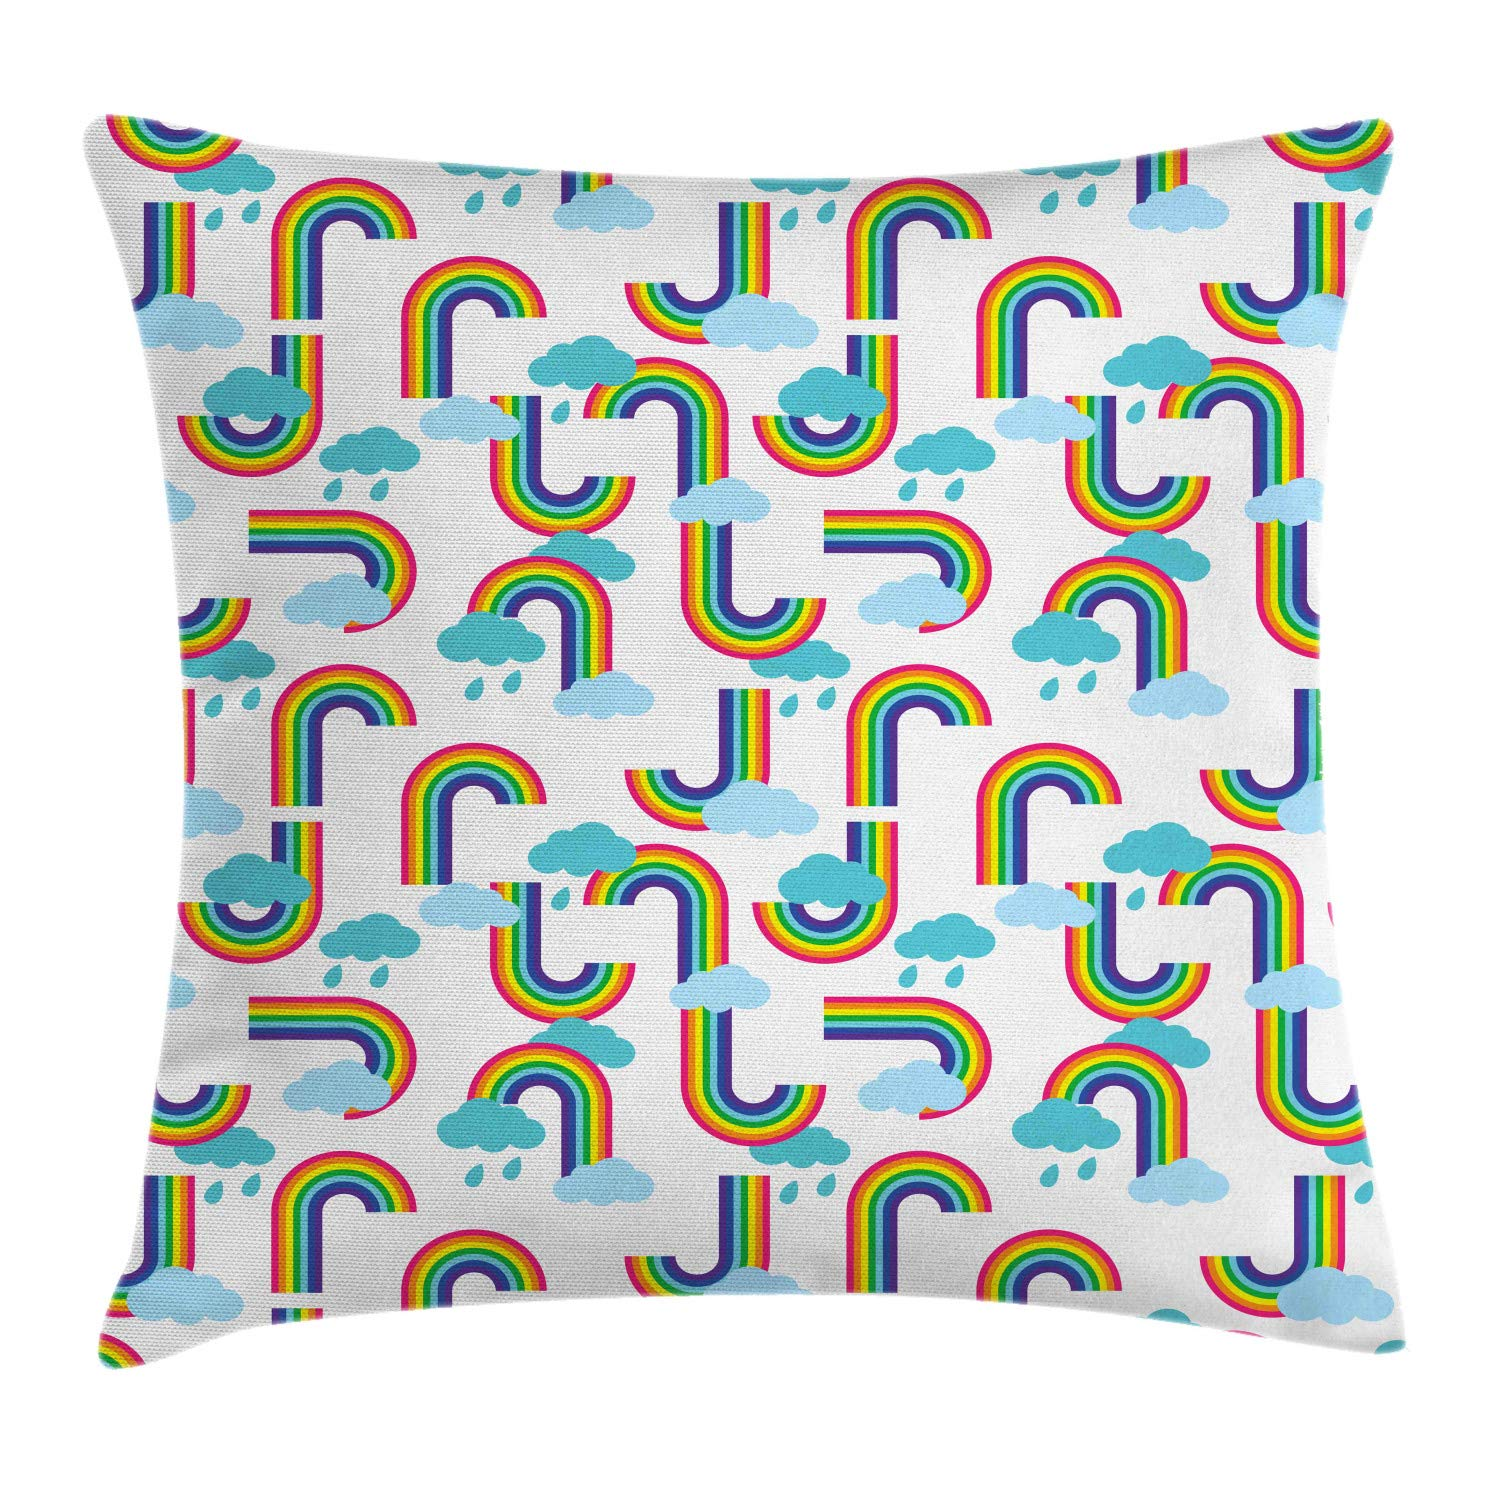 Ambesonne Cartoon Throw Pillow Cushion Cover, Repeating Nursery Themed Pattern of Rainbows and Clouds Sky Elements, Decorative Square Accent Pillow Case, 24'' X 24'', Off White and Multicolor by Ambesonne